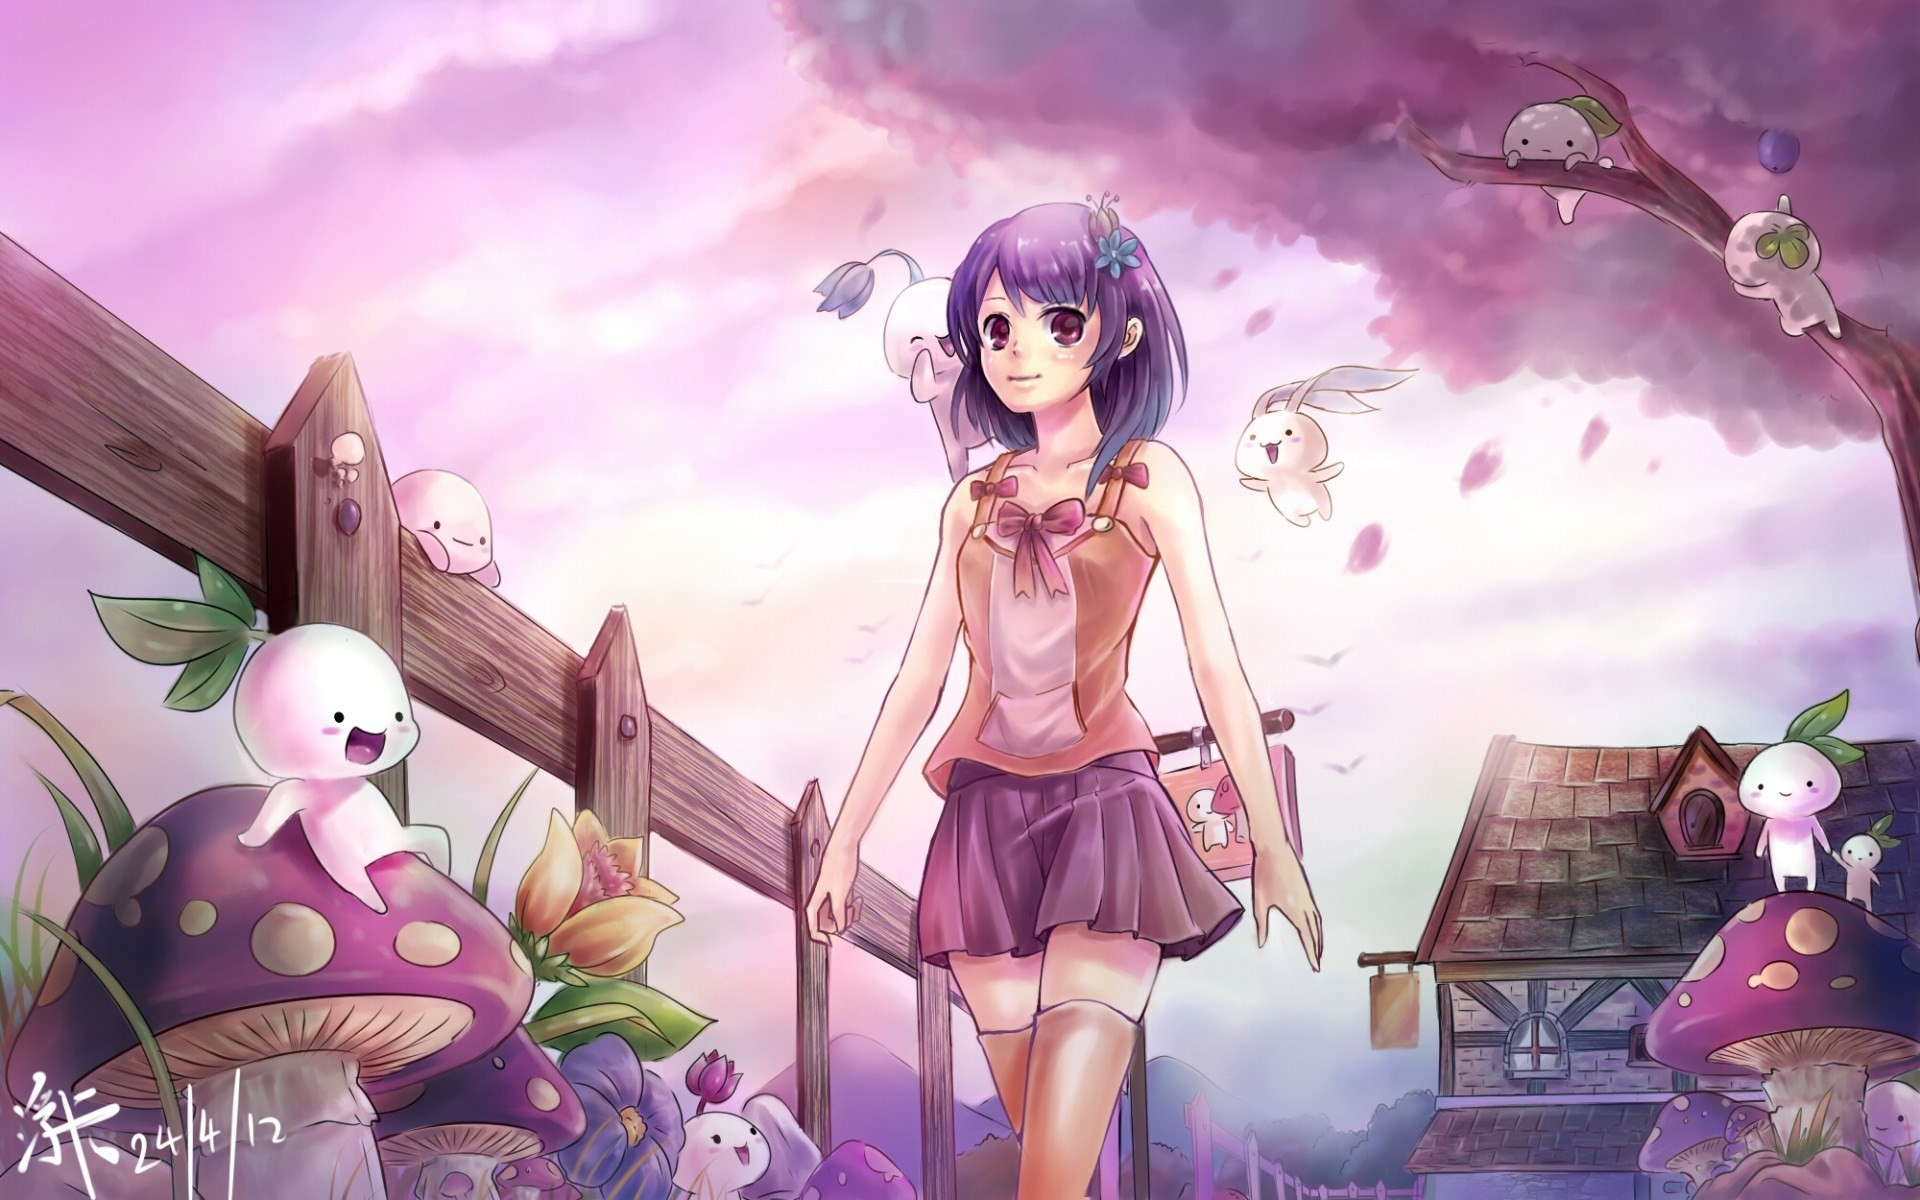 Cute anime wallpapers for desktop 59 images - Anime wallpaper pc hd ...